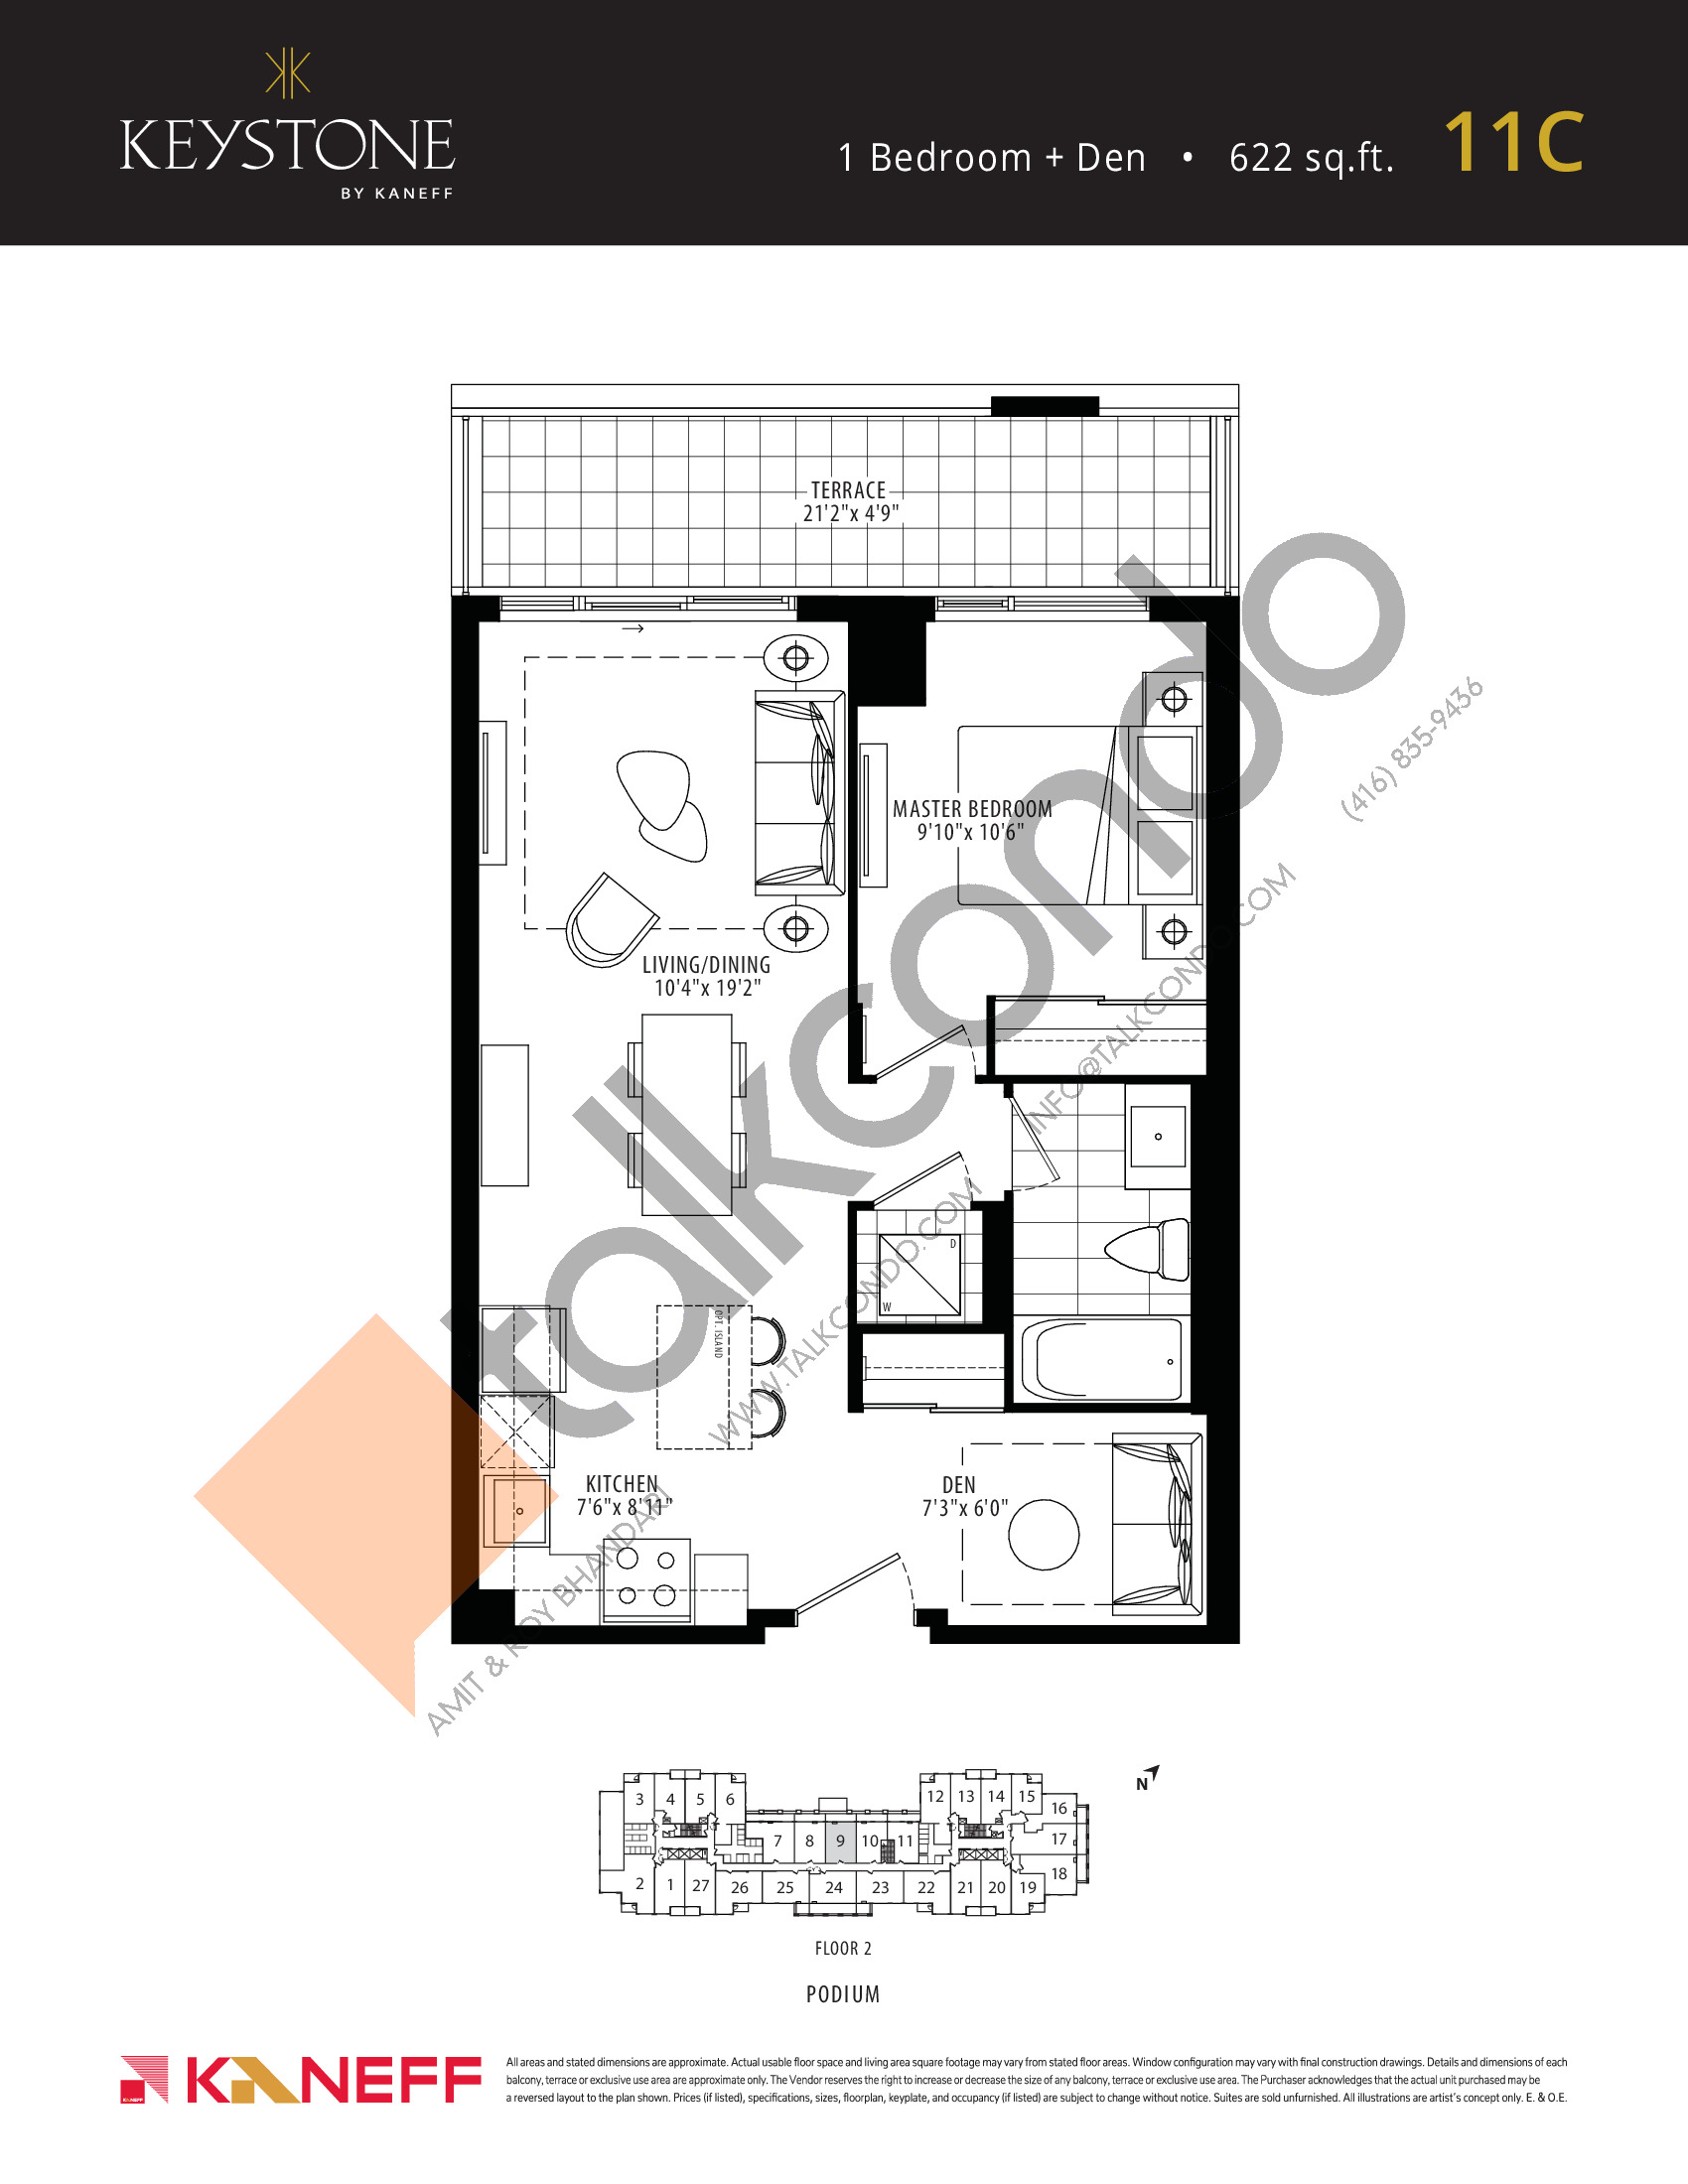 11C Floor Plan at Keystone Condos Phase 2 - 622 sq.ft